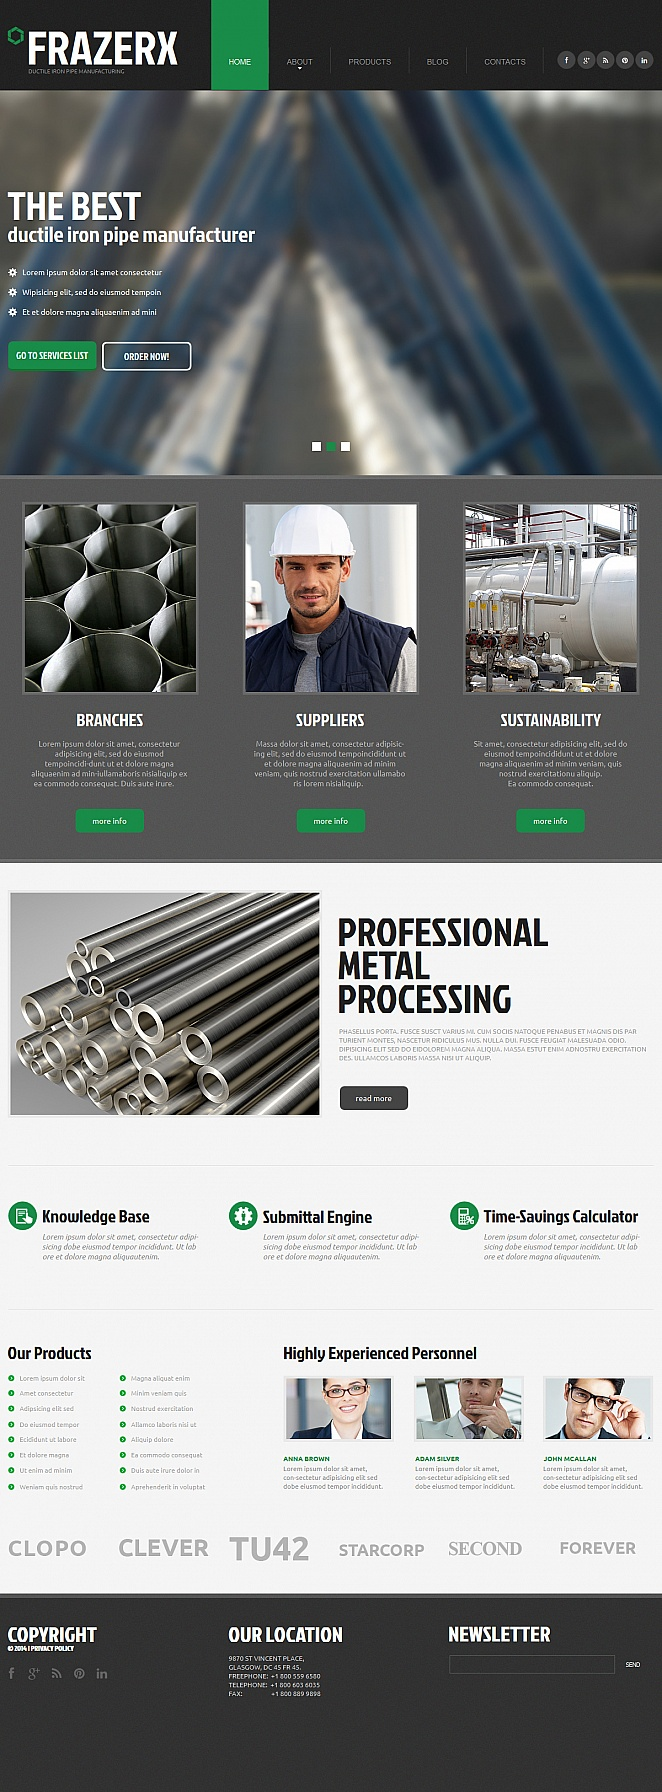 Iron Industry Website Template in Gray Color - image